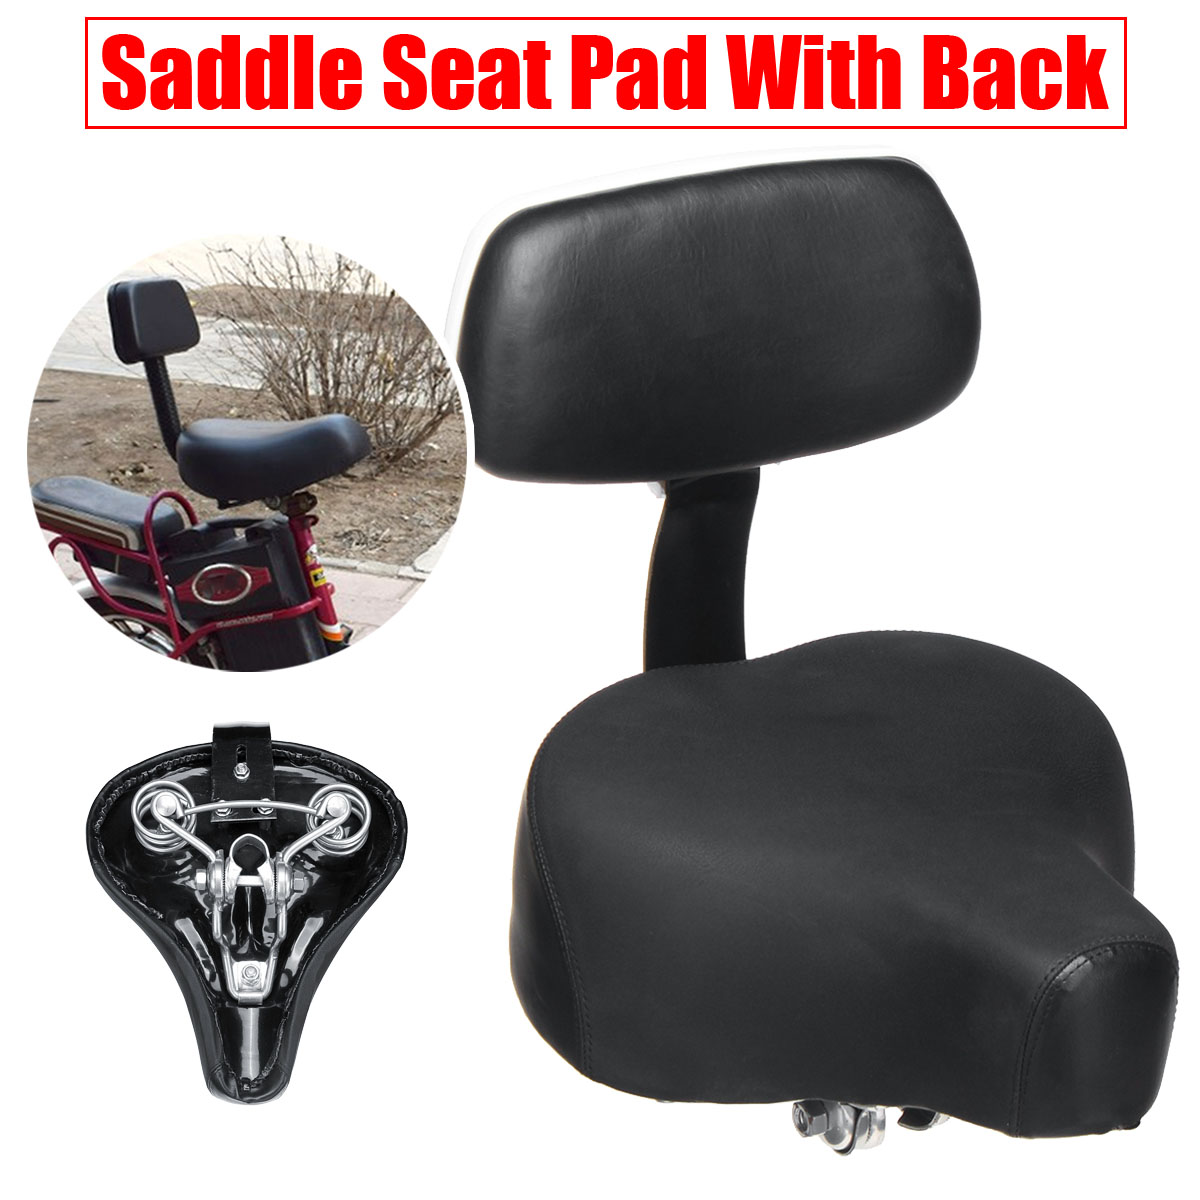 Scooter Seat Cushion Comfort Gel Rear Tricycle Electric Vehicle Bike Saddle w/ Back Rest Support